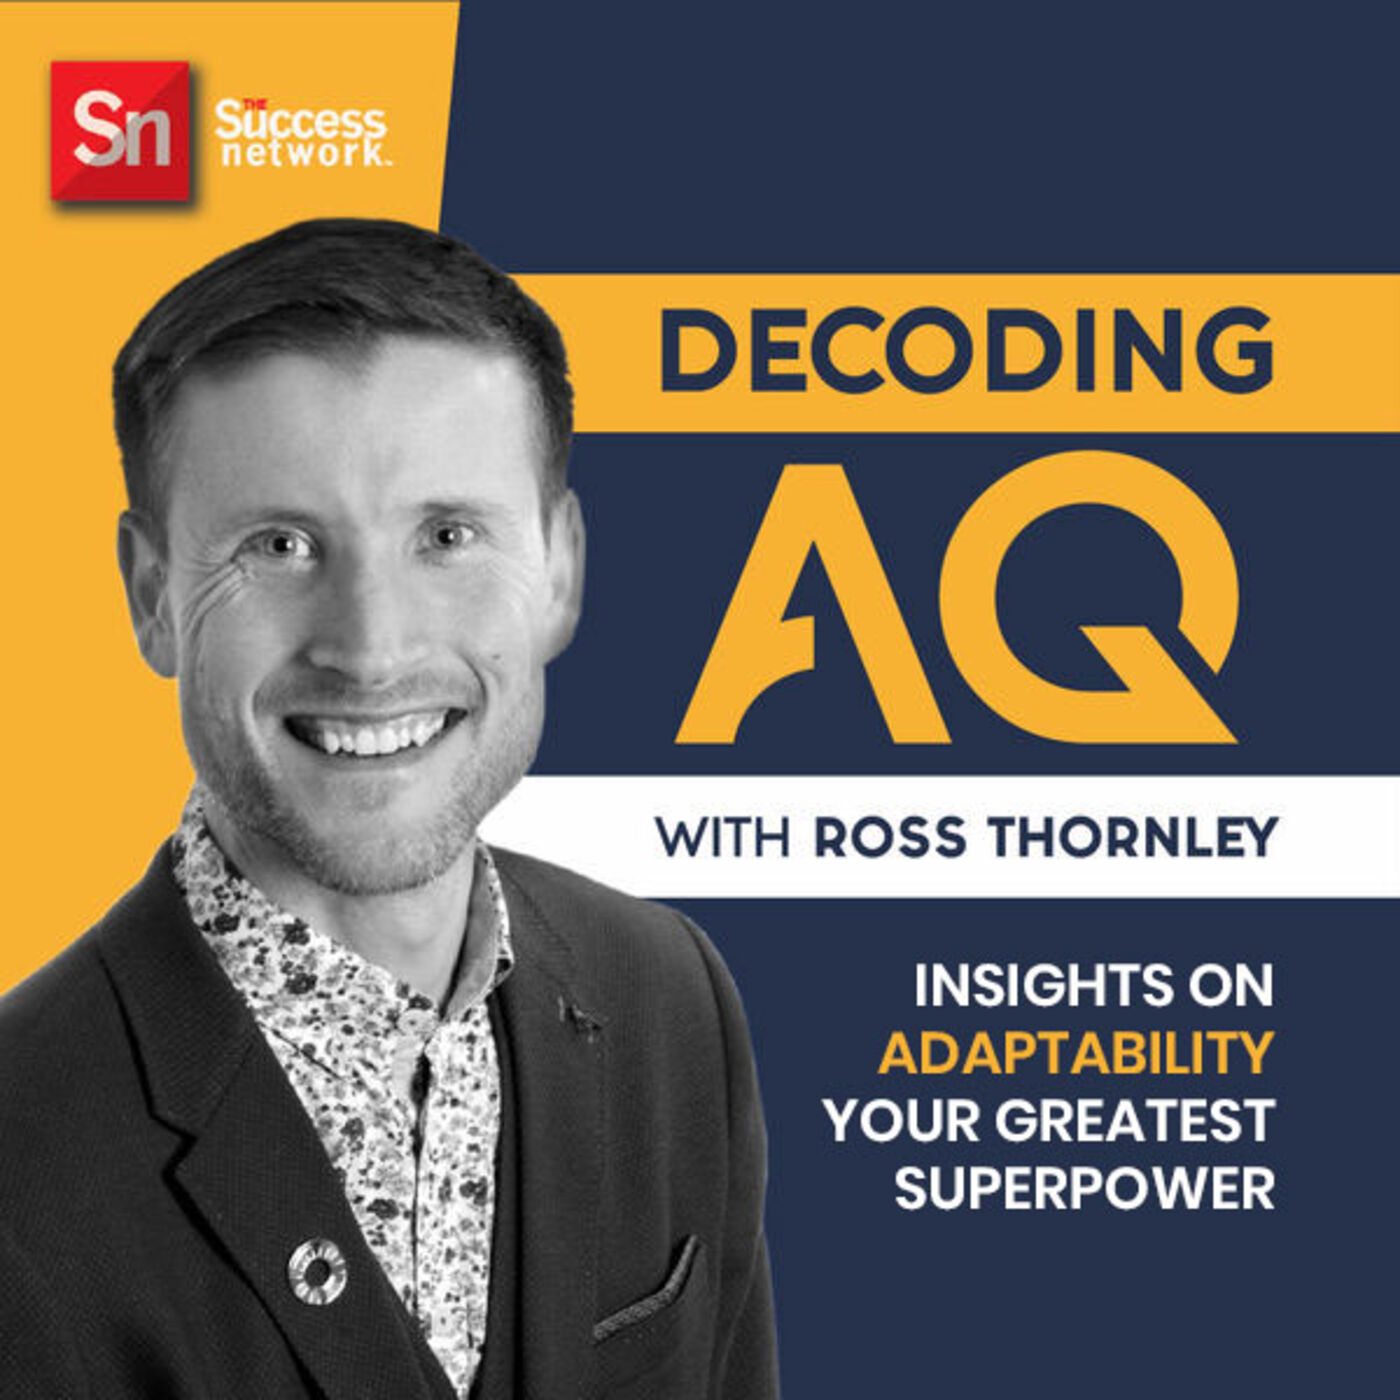 DECODING AQ - Adaptability Confidence With Ross Thornley